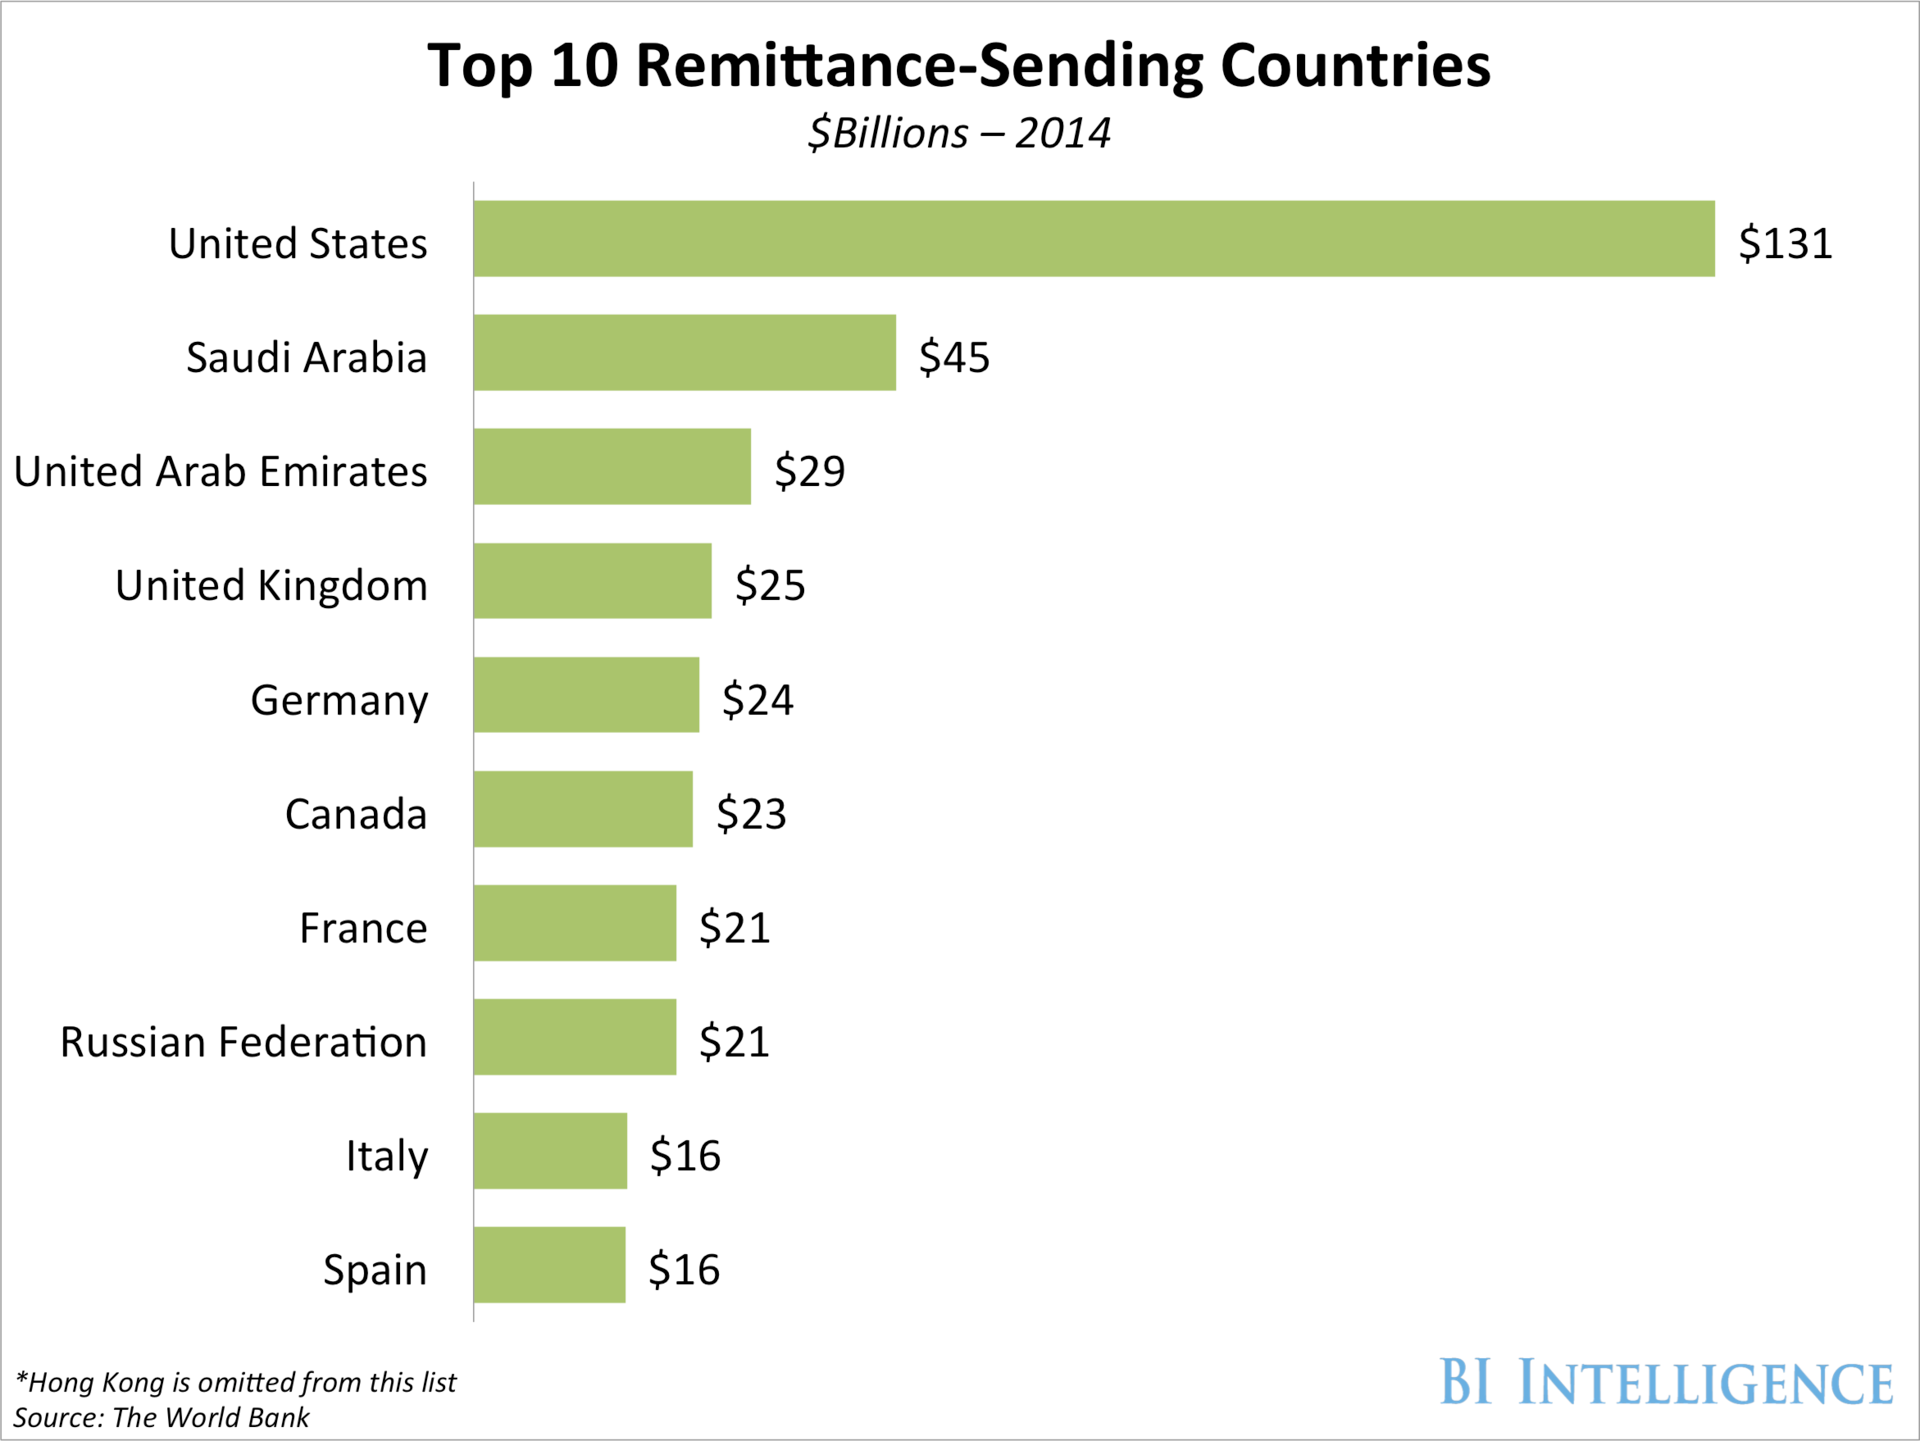 Top sending countries for remittances 2014